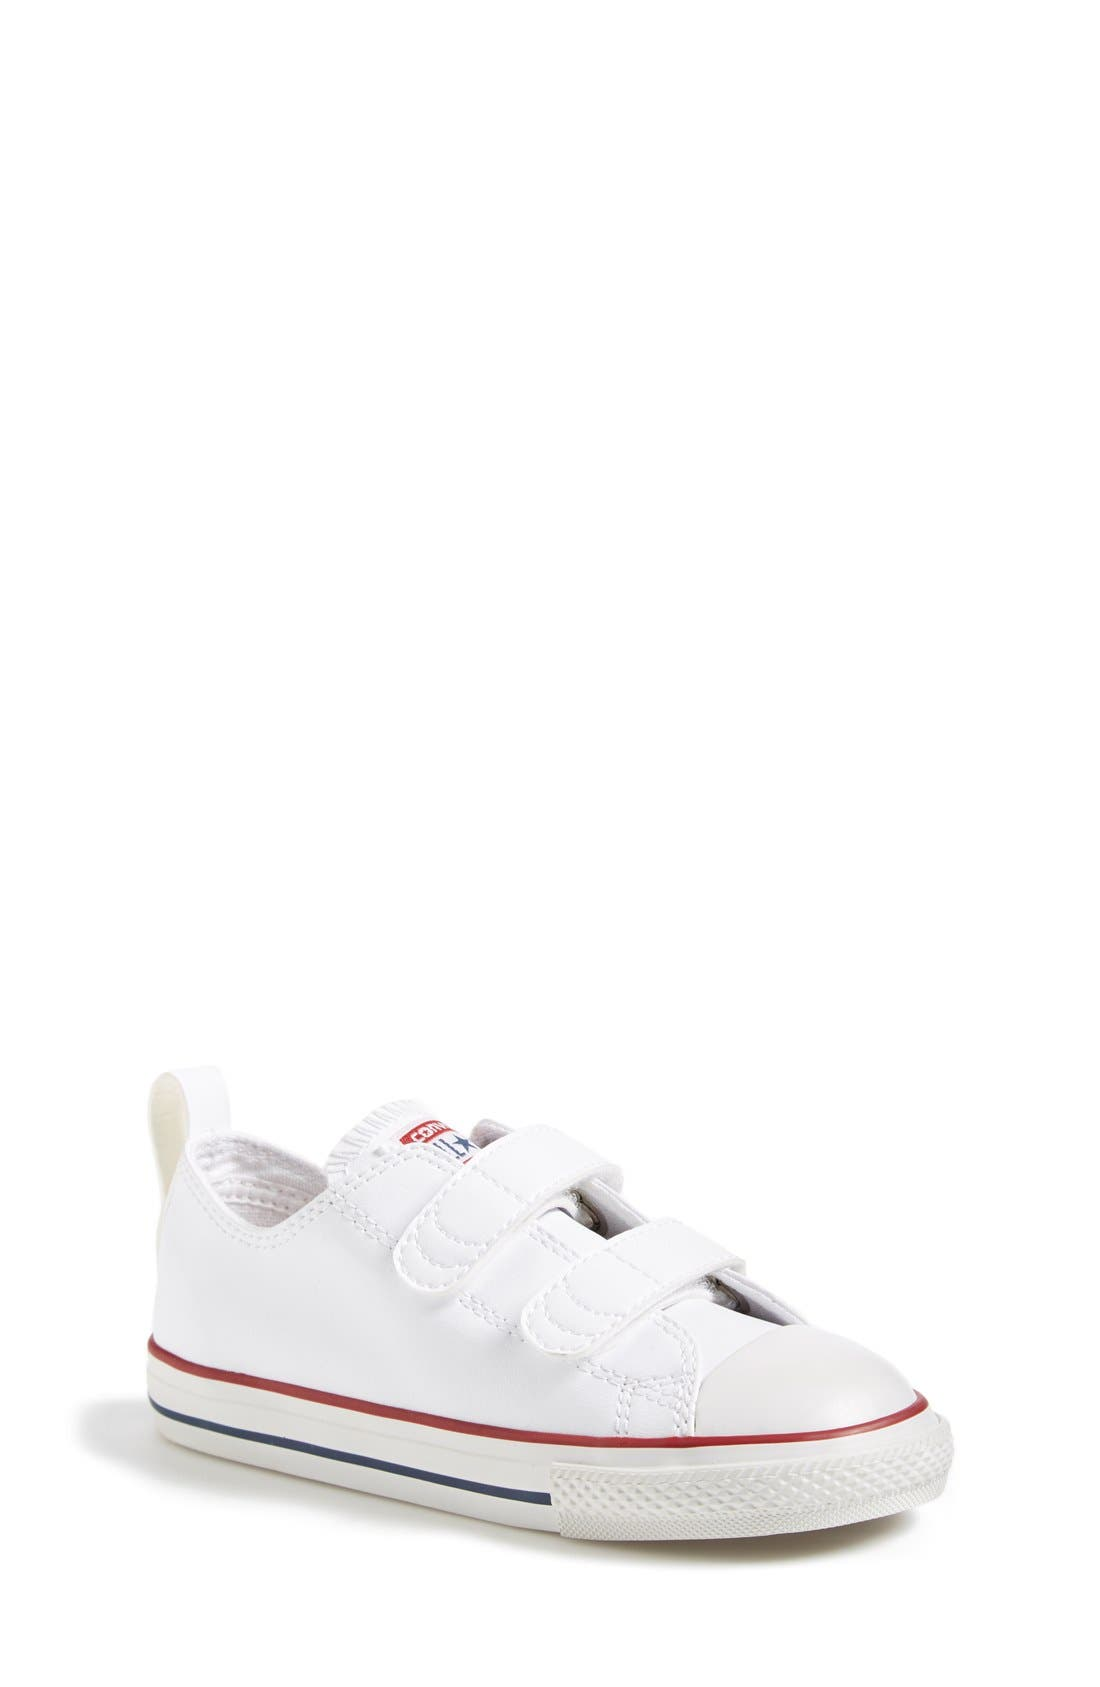 CONVERSE Chuck Taylor<sup>®</sup> All Star<sup>®</sup> 2V Faux Leather Sneaker, Main, color, WHITE